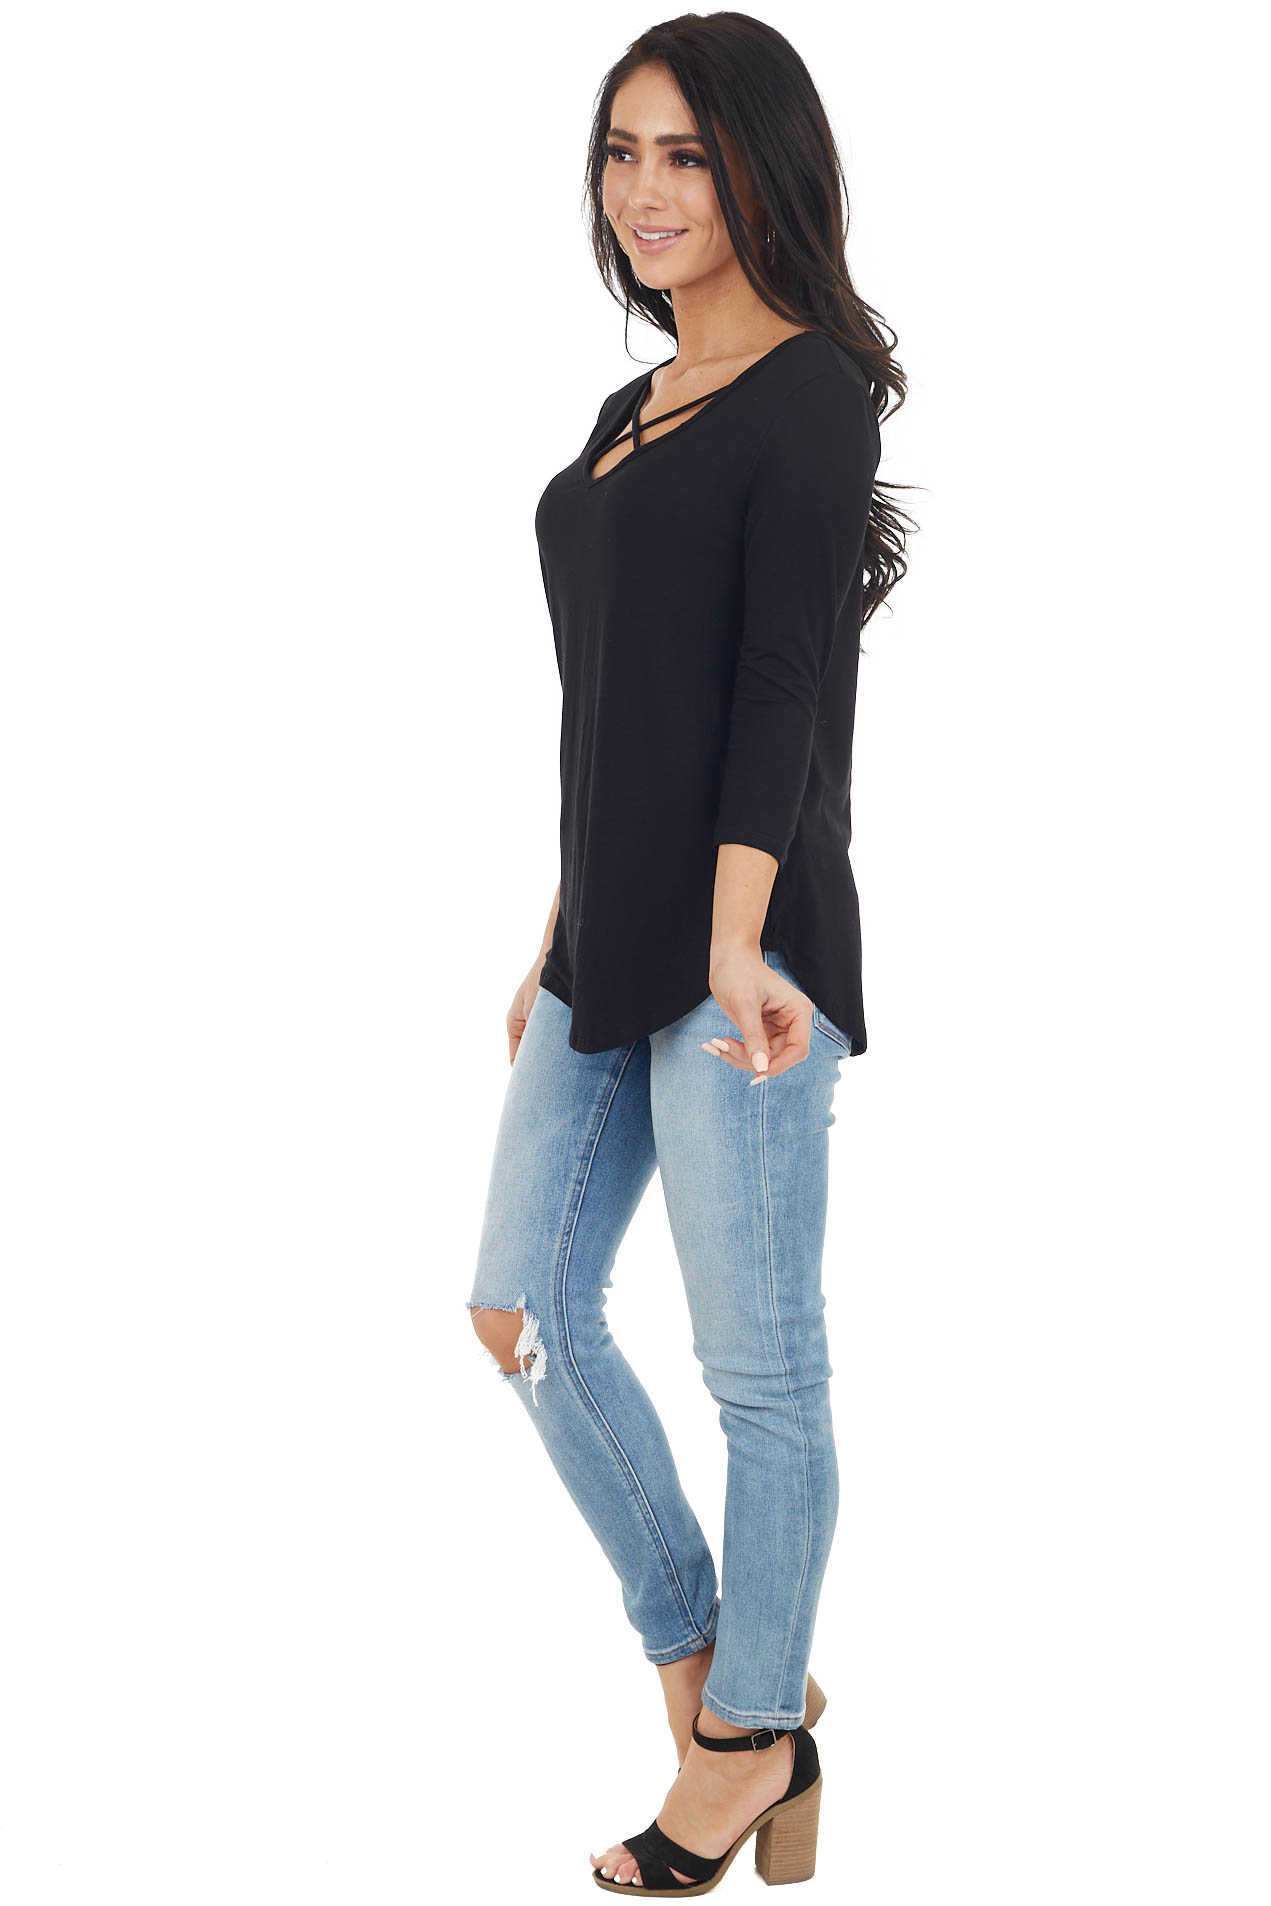 Black 3/4 Sleeve Knit Top with Criss Cross Details